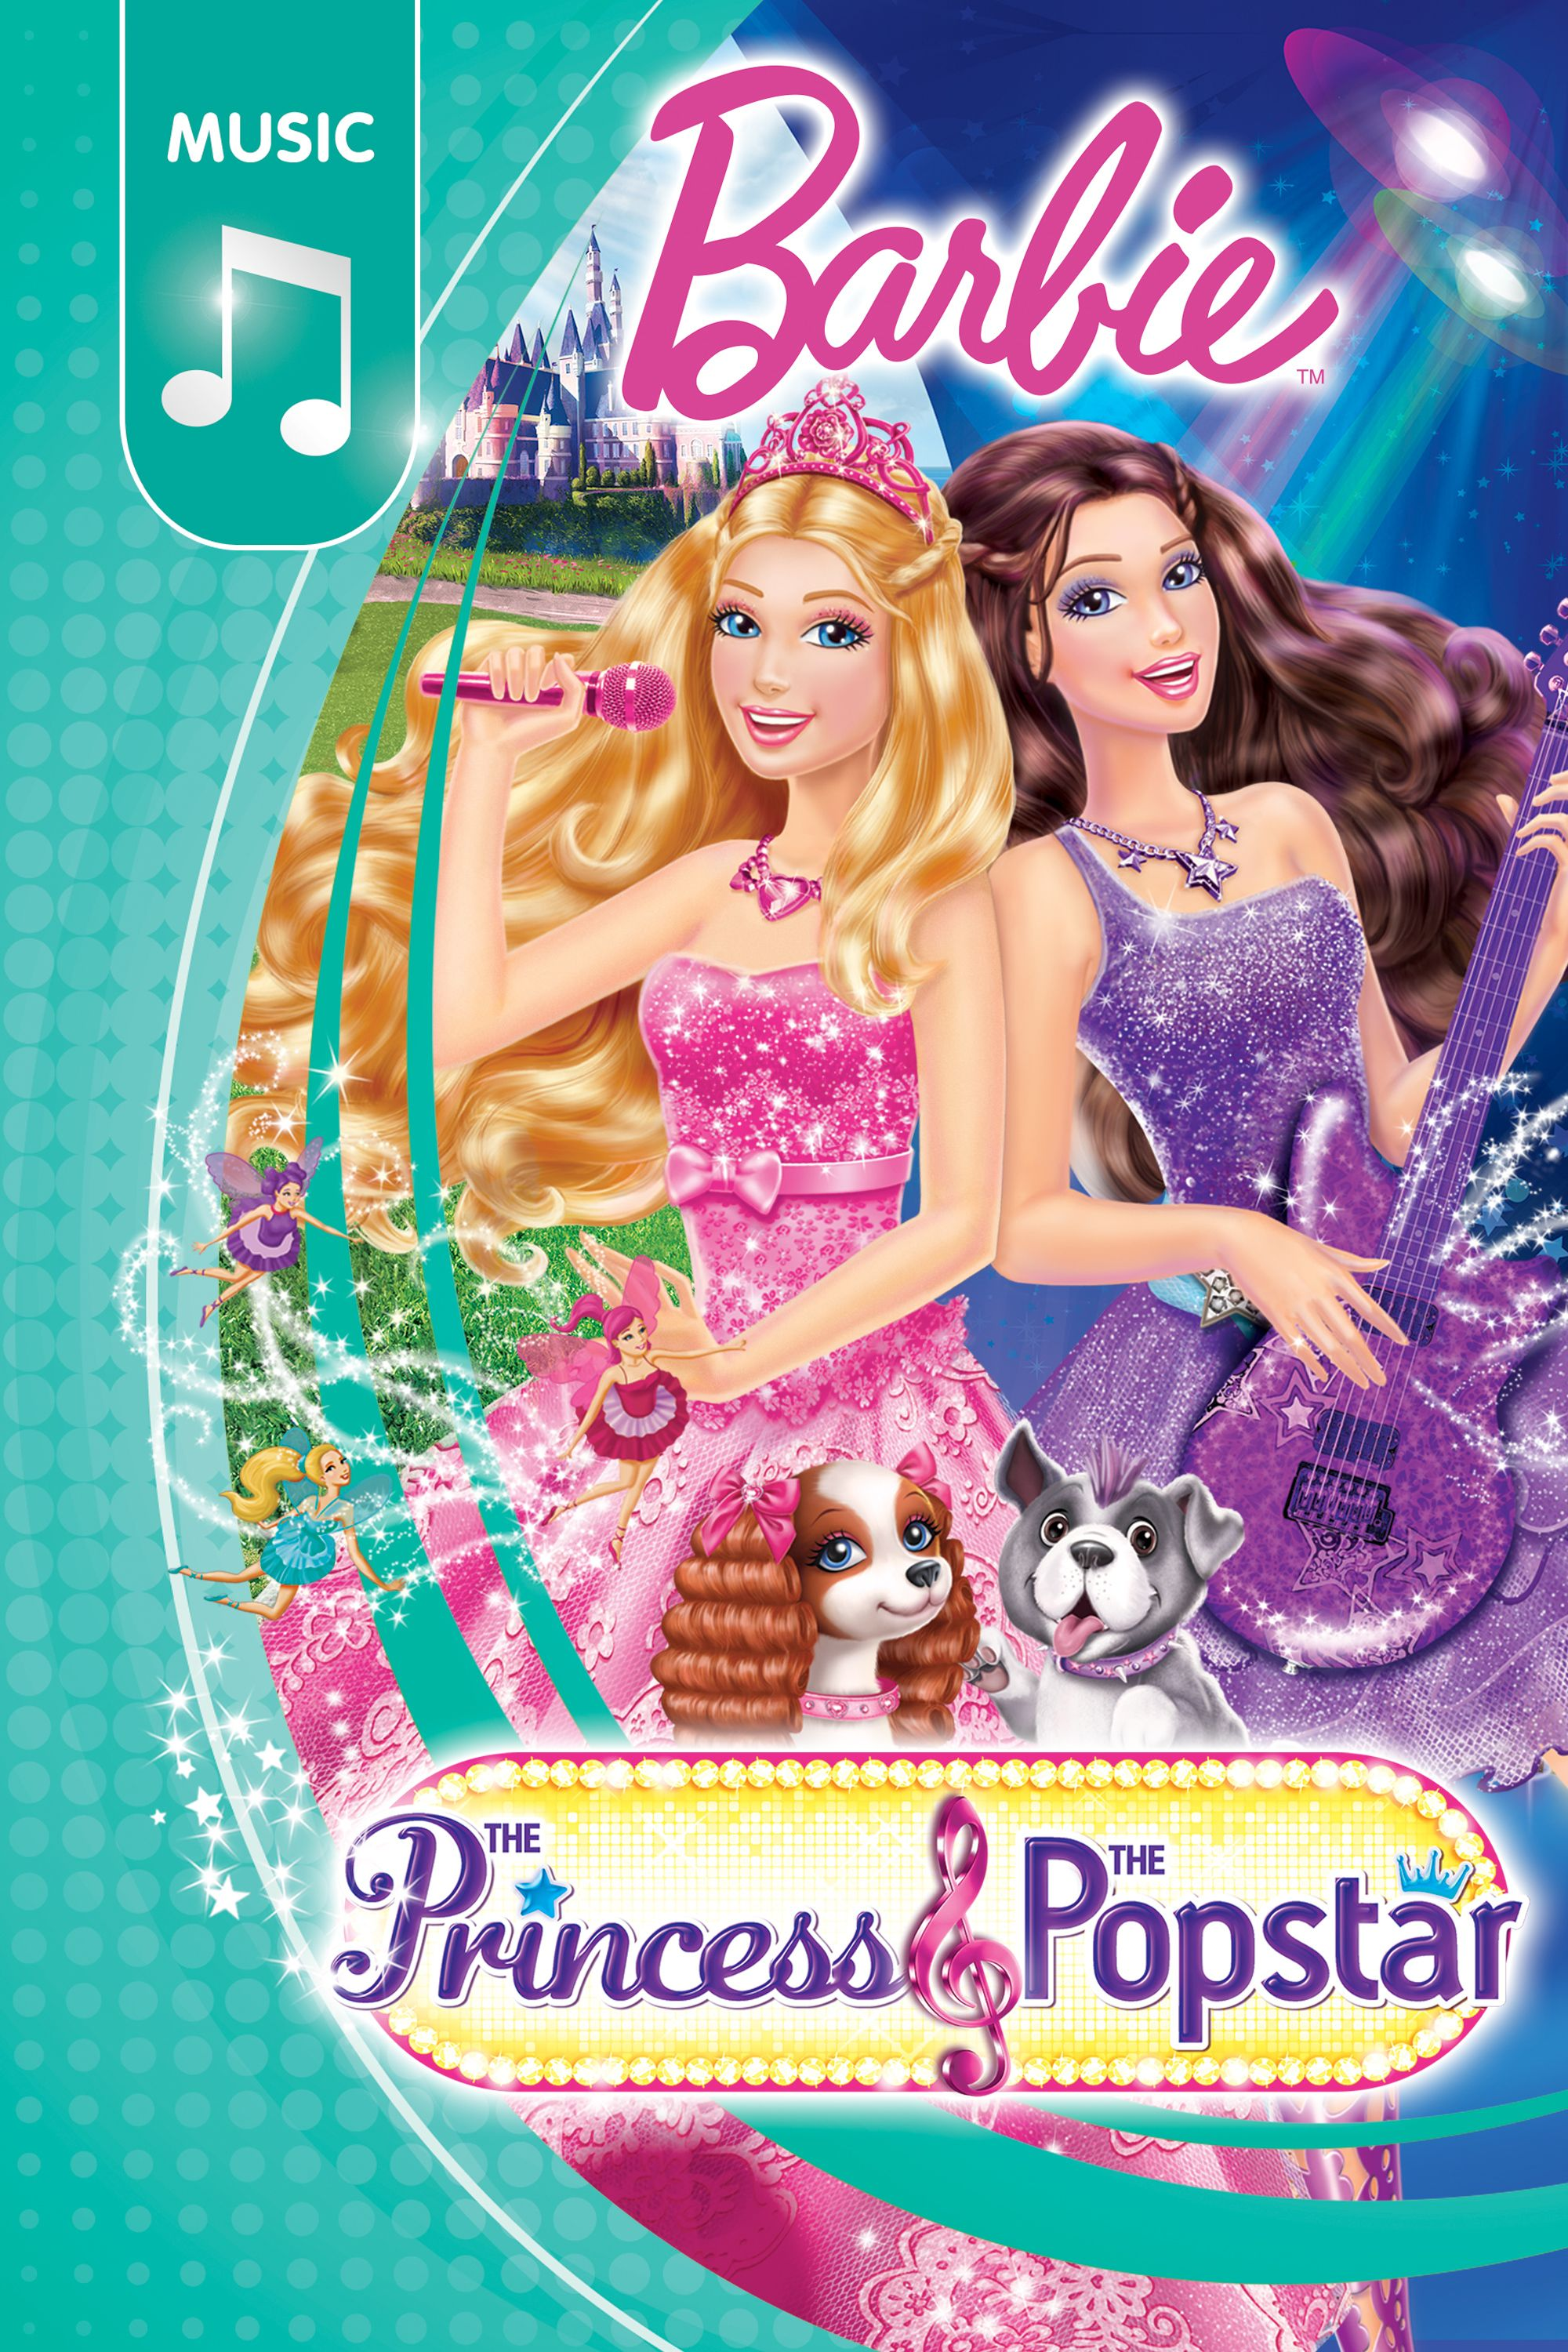 barbie and the popstar full movie online free